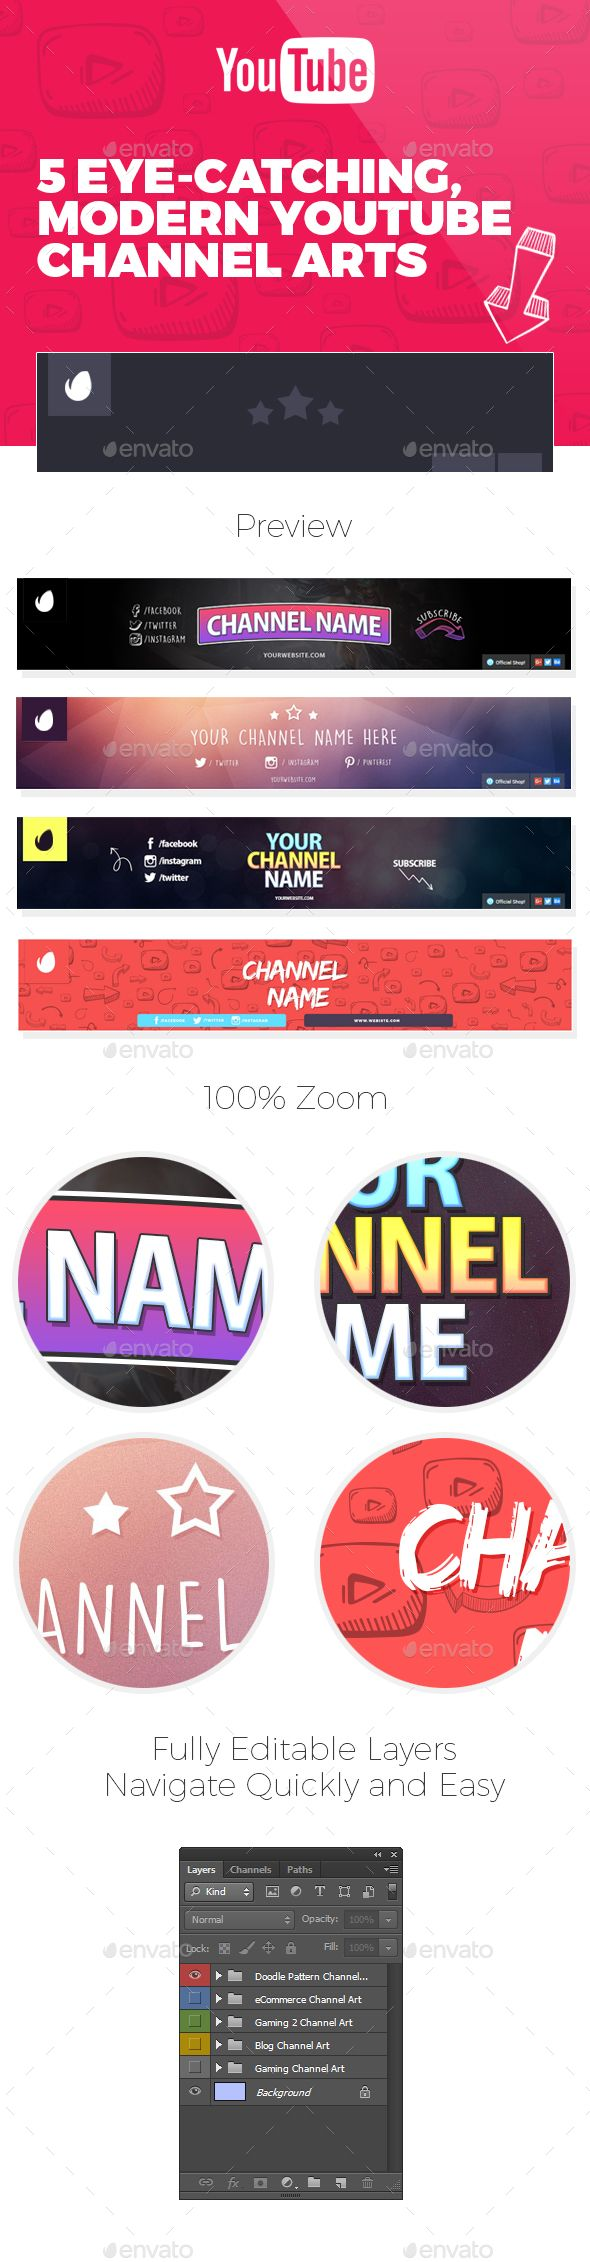 5 Youtube Channel Arts Template PSD. Download here: http://graphicriver.net/item/5-youtube-channel-arts/16065465?ref=ksioks